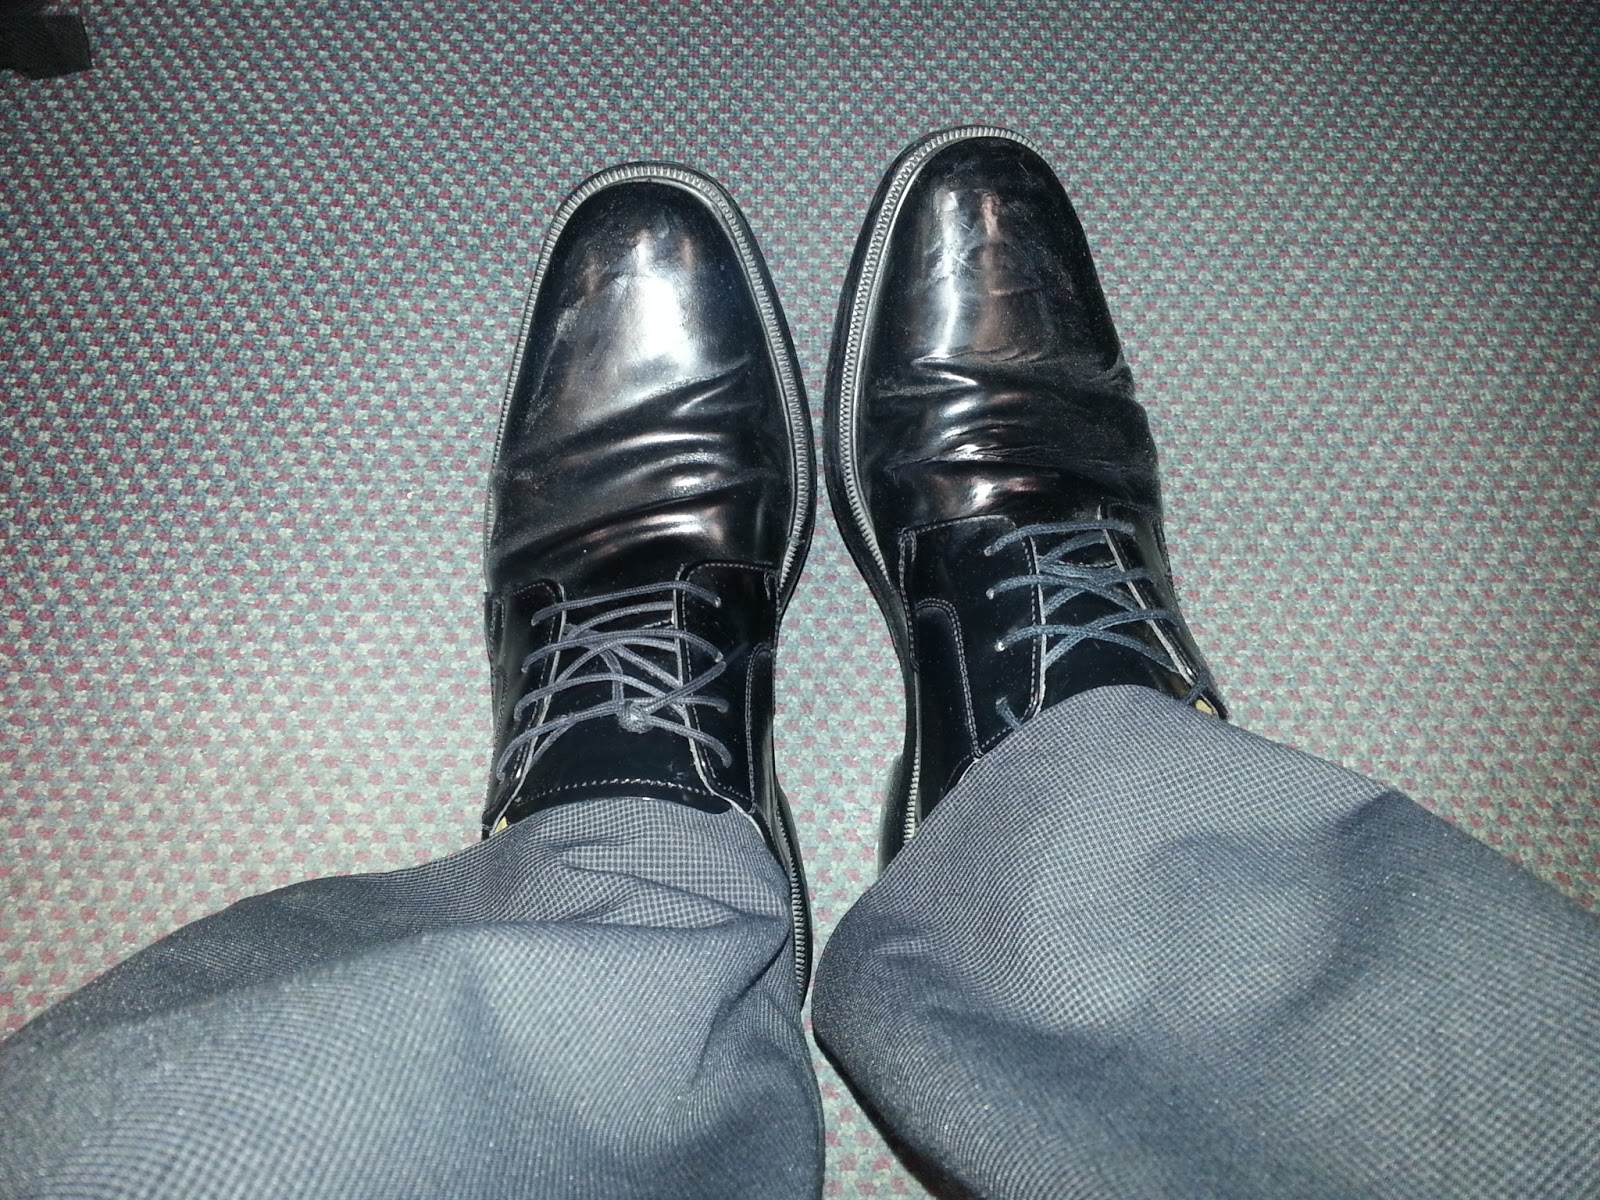 Working Shoe for Young Exec - Page 147 - www hardwarezone com sg